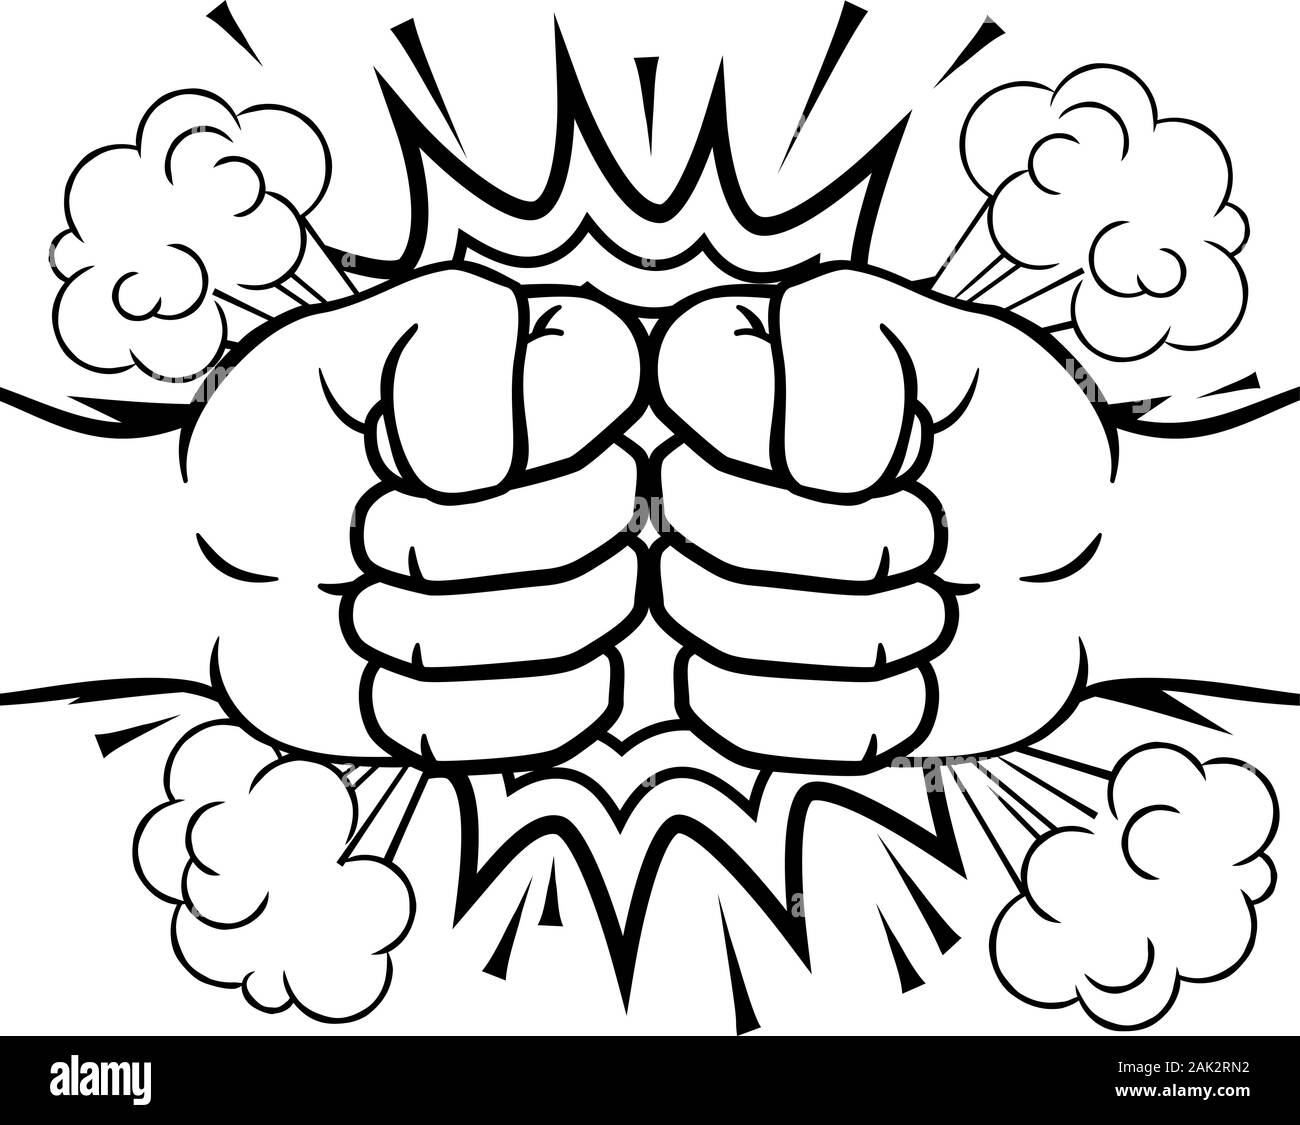 Drawing Two Punching High Resolution Stock Photography And Images Alamy